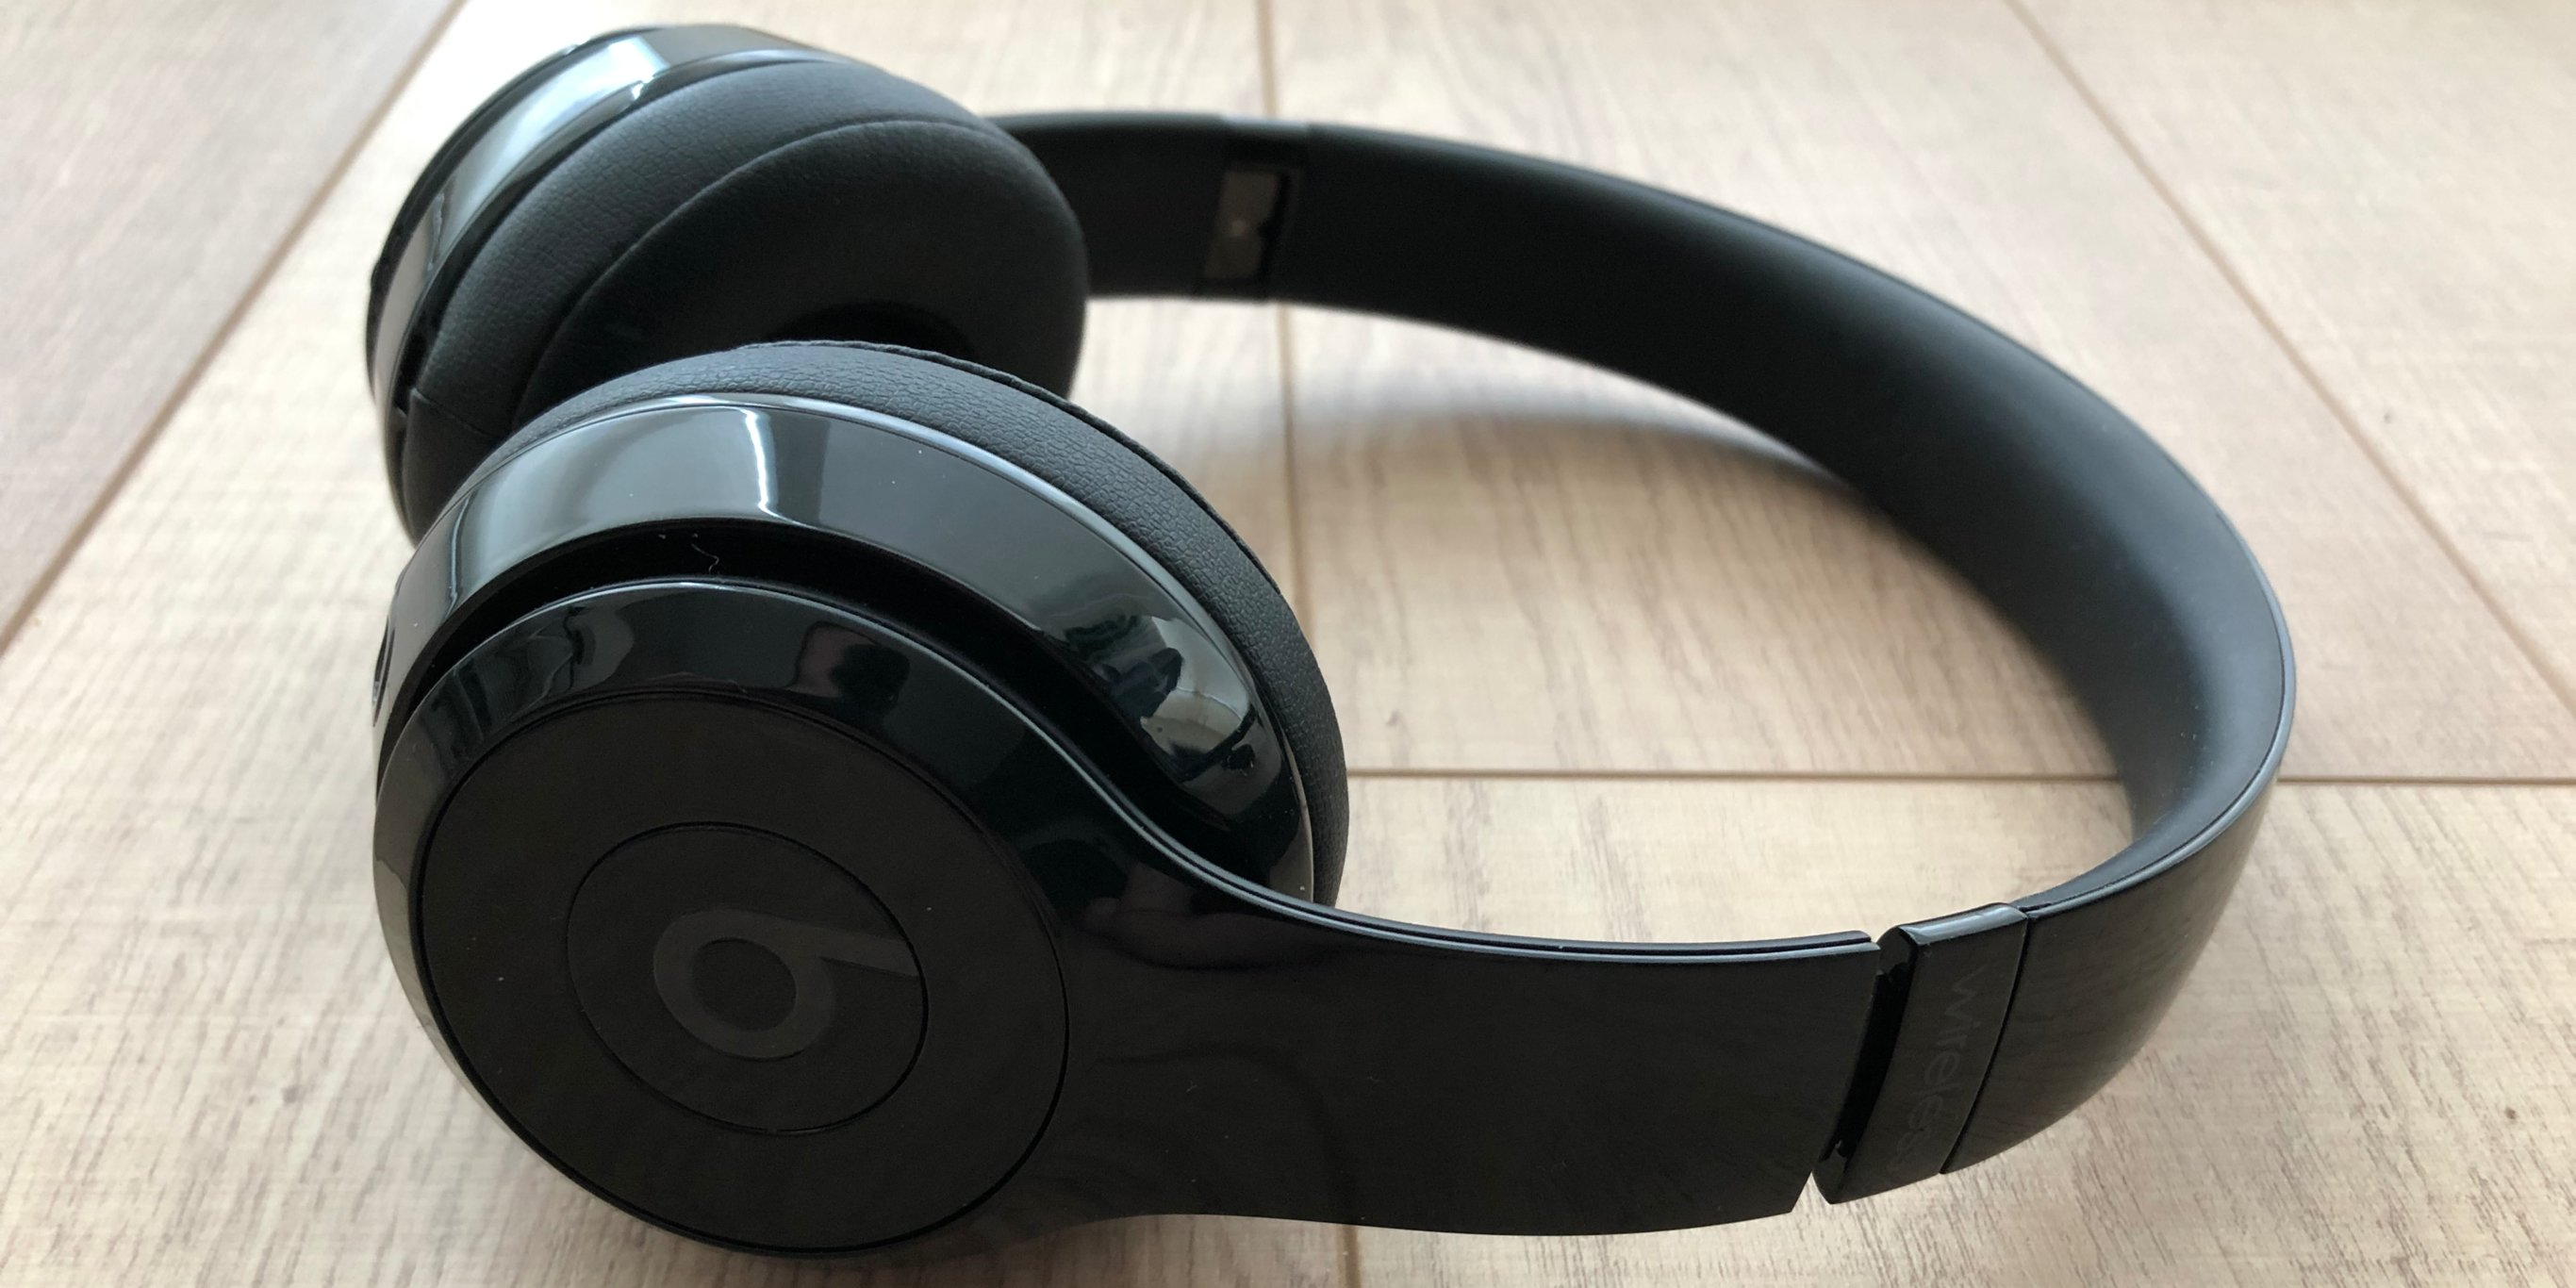 Beats by Dre Solo3 headphones are on sale for $129 at Amazon and Best Buy for a limited time